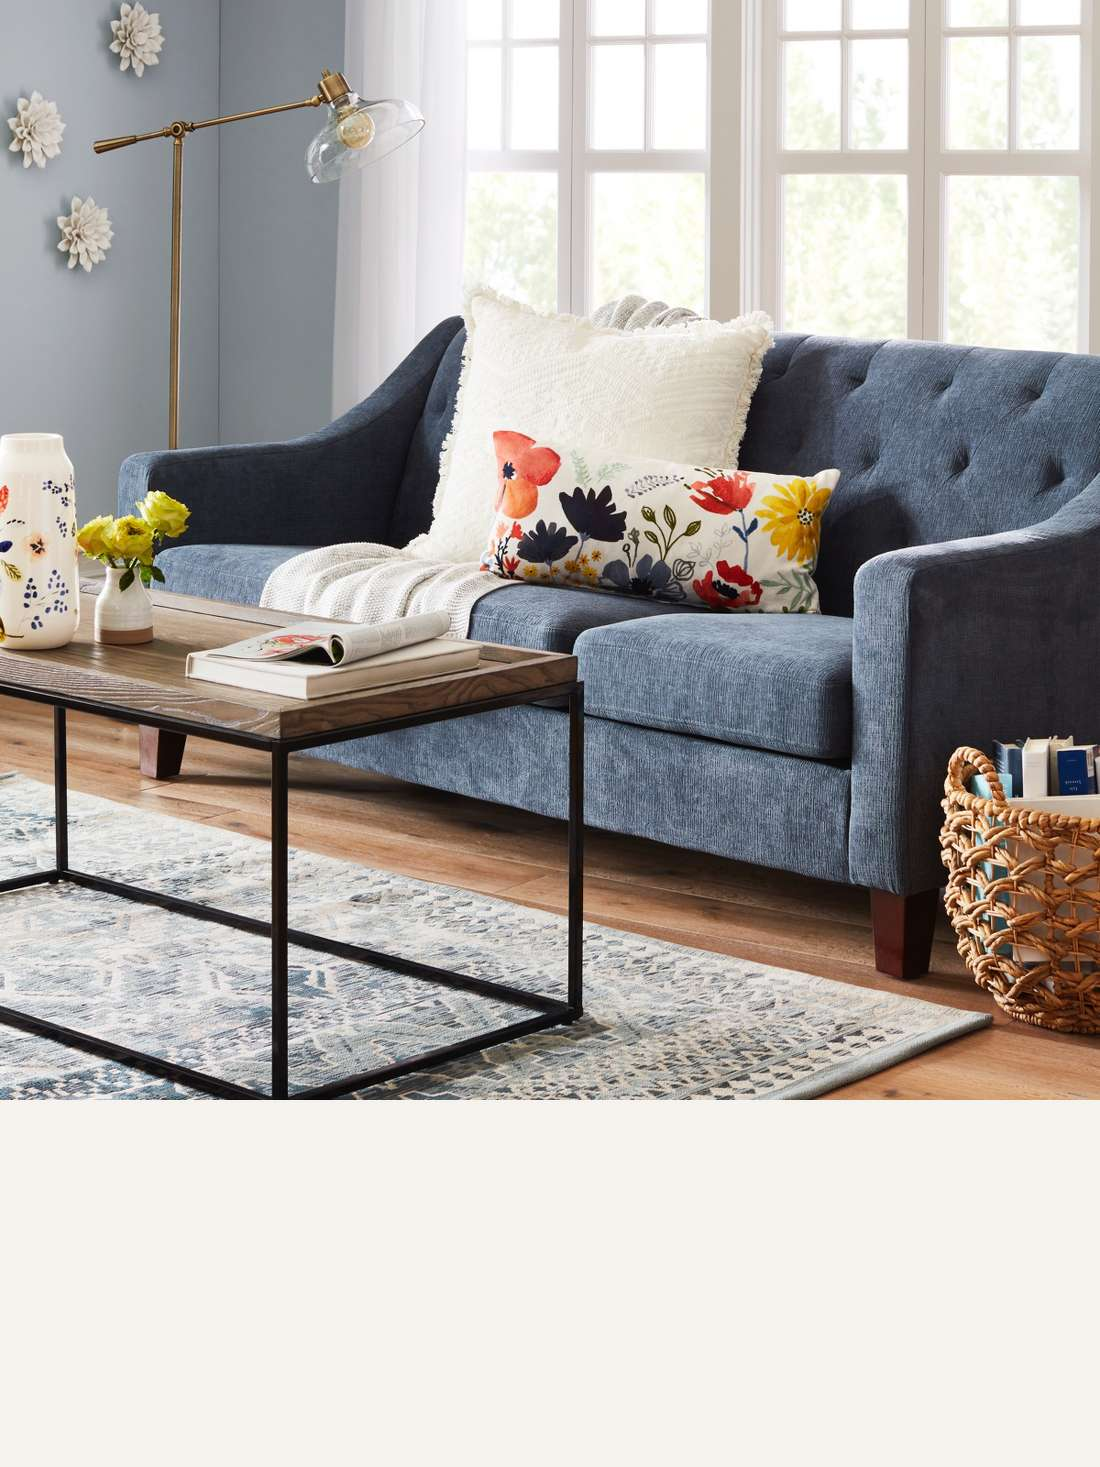 76 Sofas Are Great For Small Es While 89 Ger Can Anchor A Larger Room Browse Loveseat